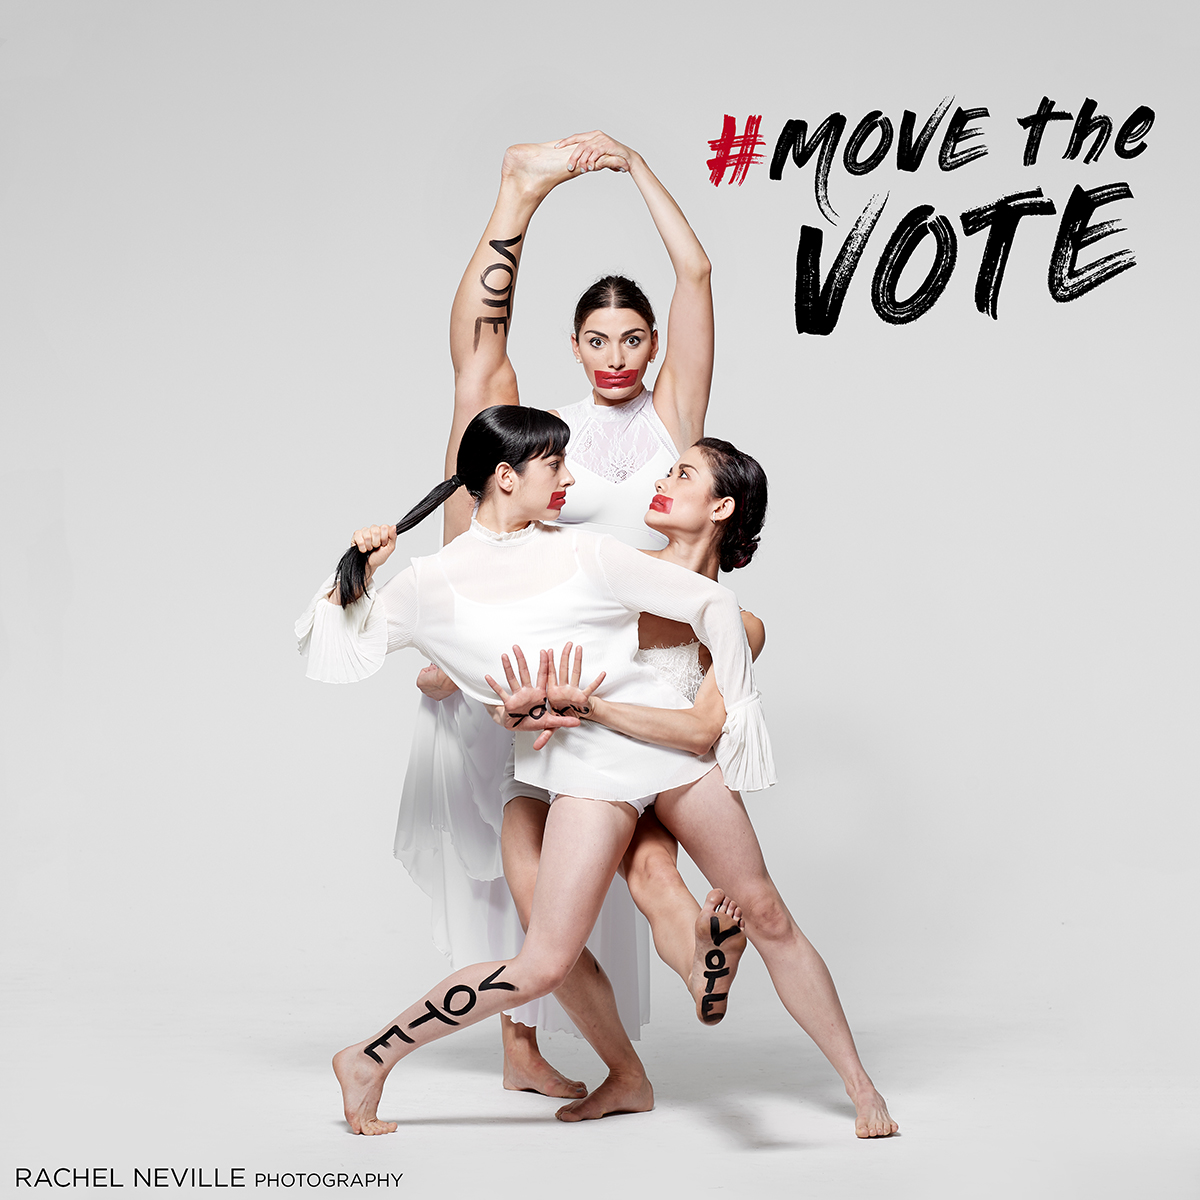 Photo courtesy of Rachel Neville, #movethevote campaign